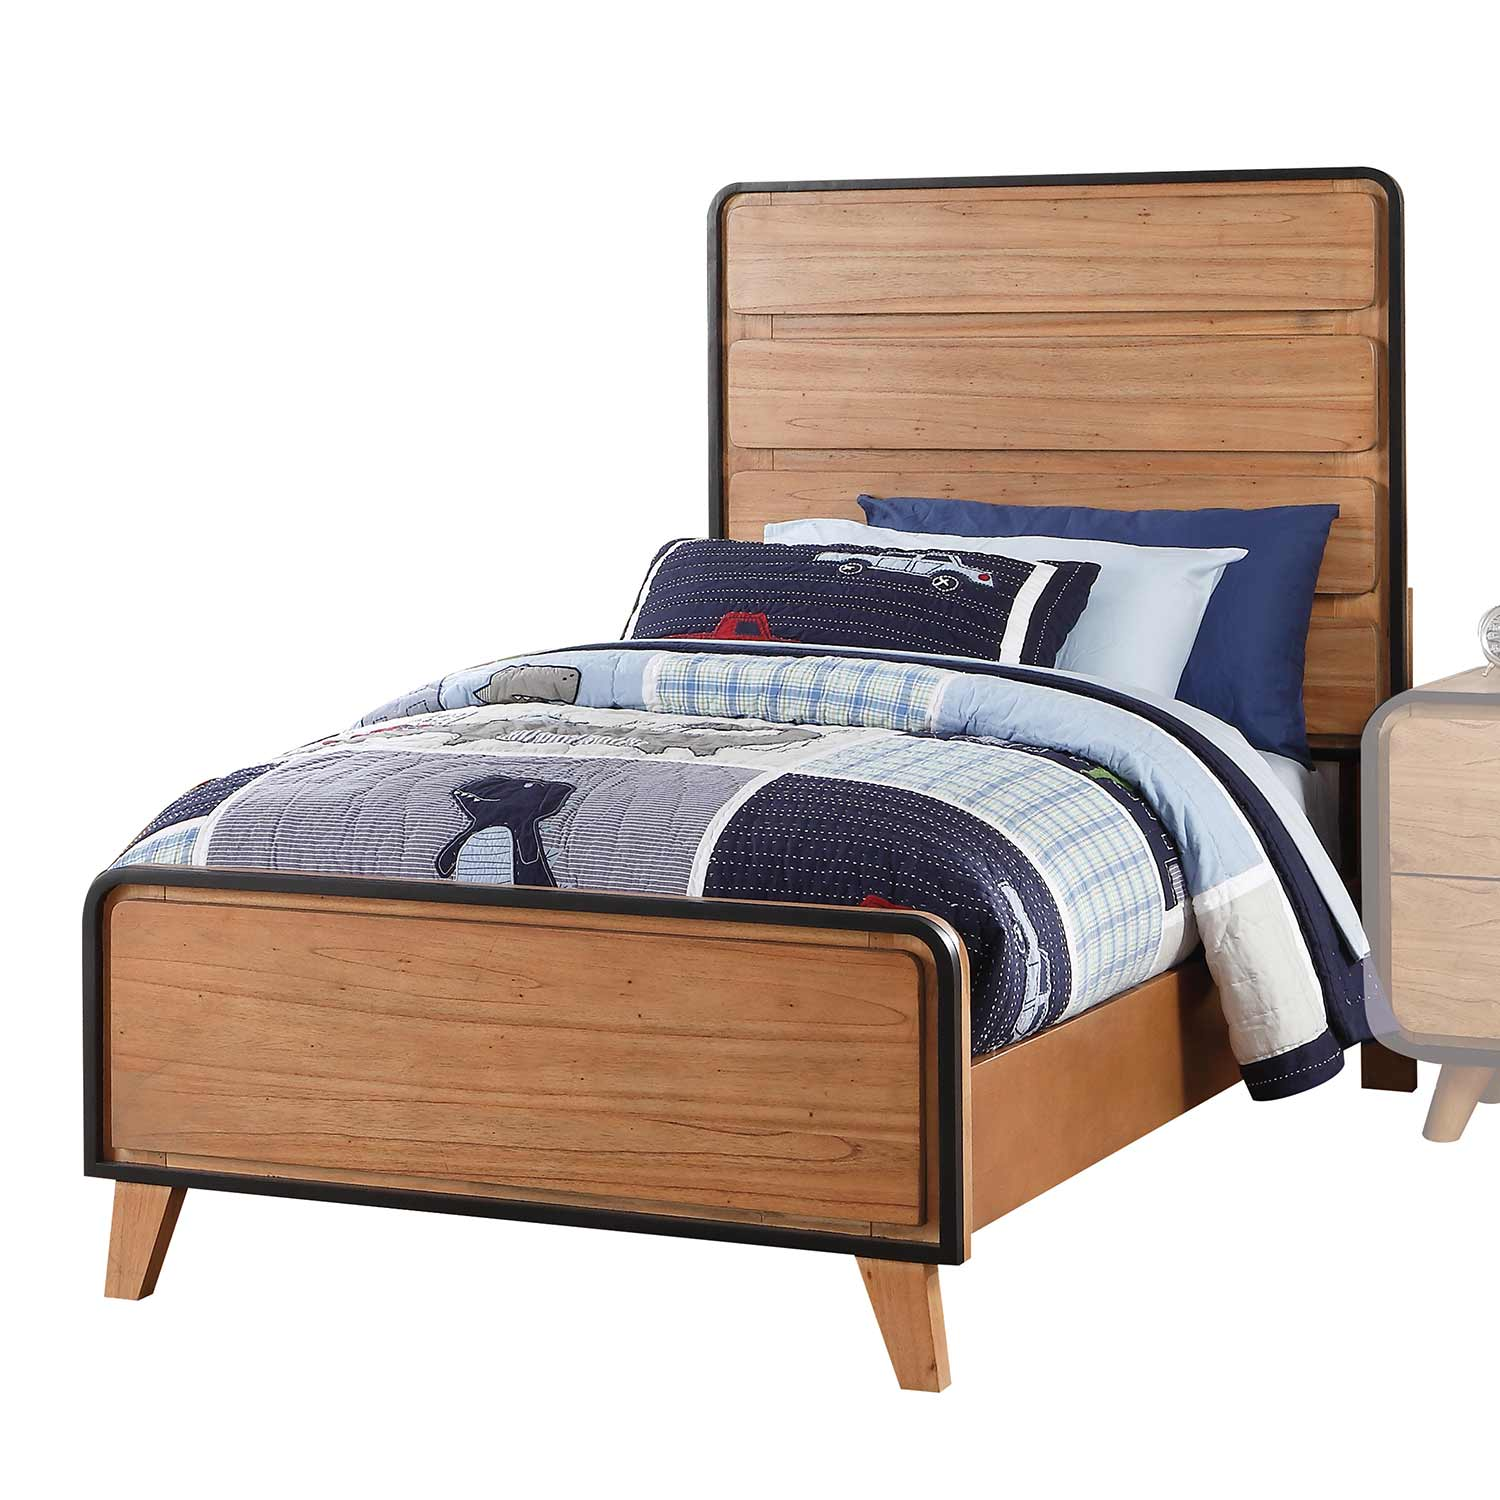 Acme Carla Bed - Oak/Black